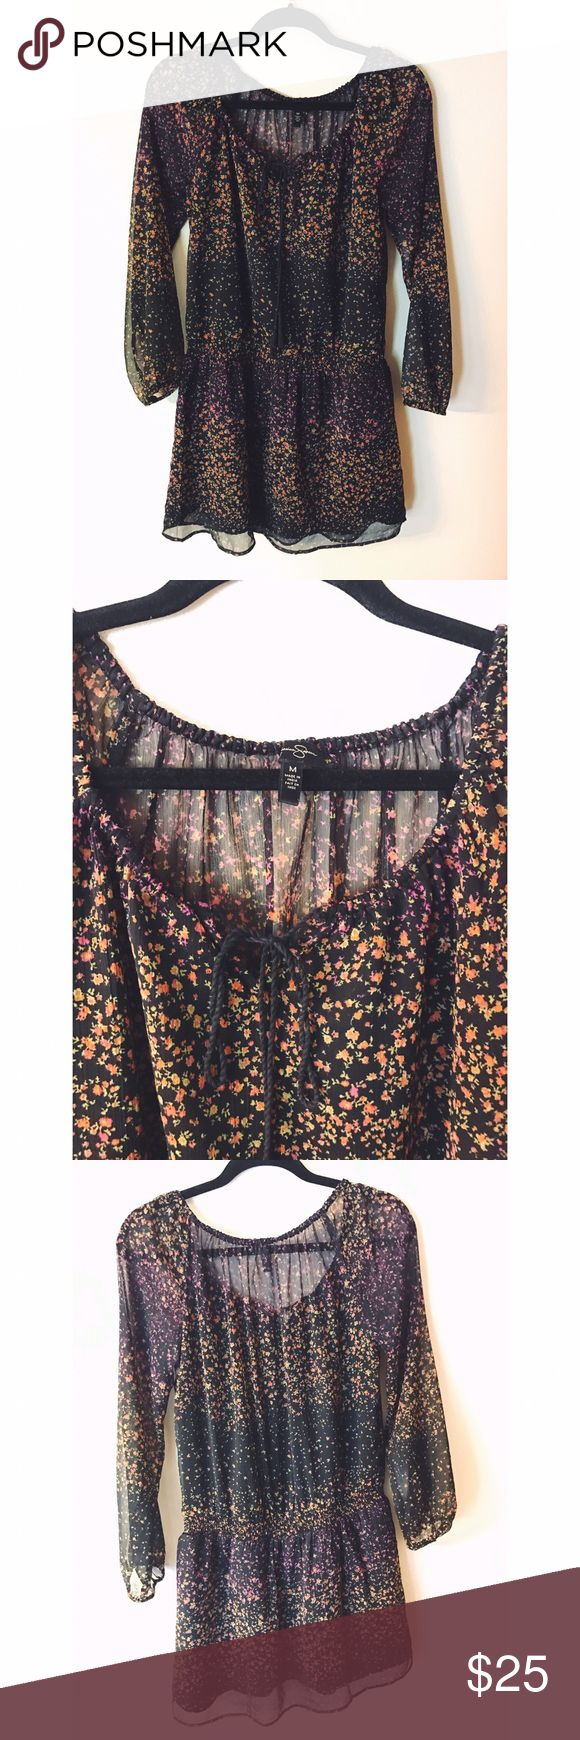 Long sleeve floral Jessica Simpson dress {If the perfect peasant top suddenly became a dress...} This black number is a boho beauty with details like a keyhole cutout in the front, cinched waist, floral pattern, slouchy sleeves, and see-through back (but only on the top!) Jessica Simpson Dresses Long Sleeve